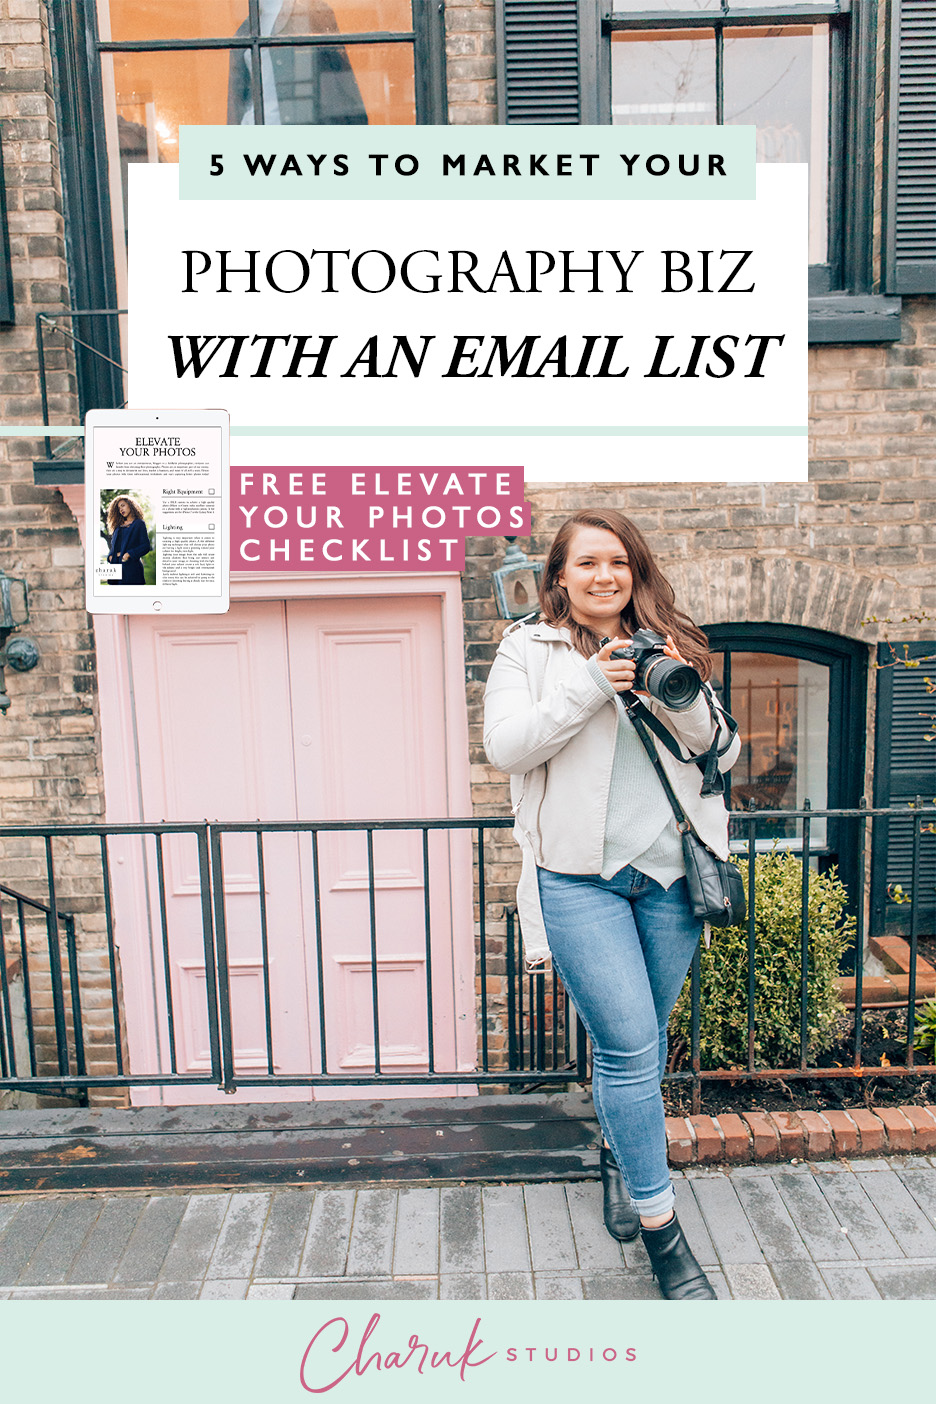 5 Ways to Market Your Photography Business with an Email List by Charuk Studios